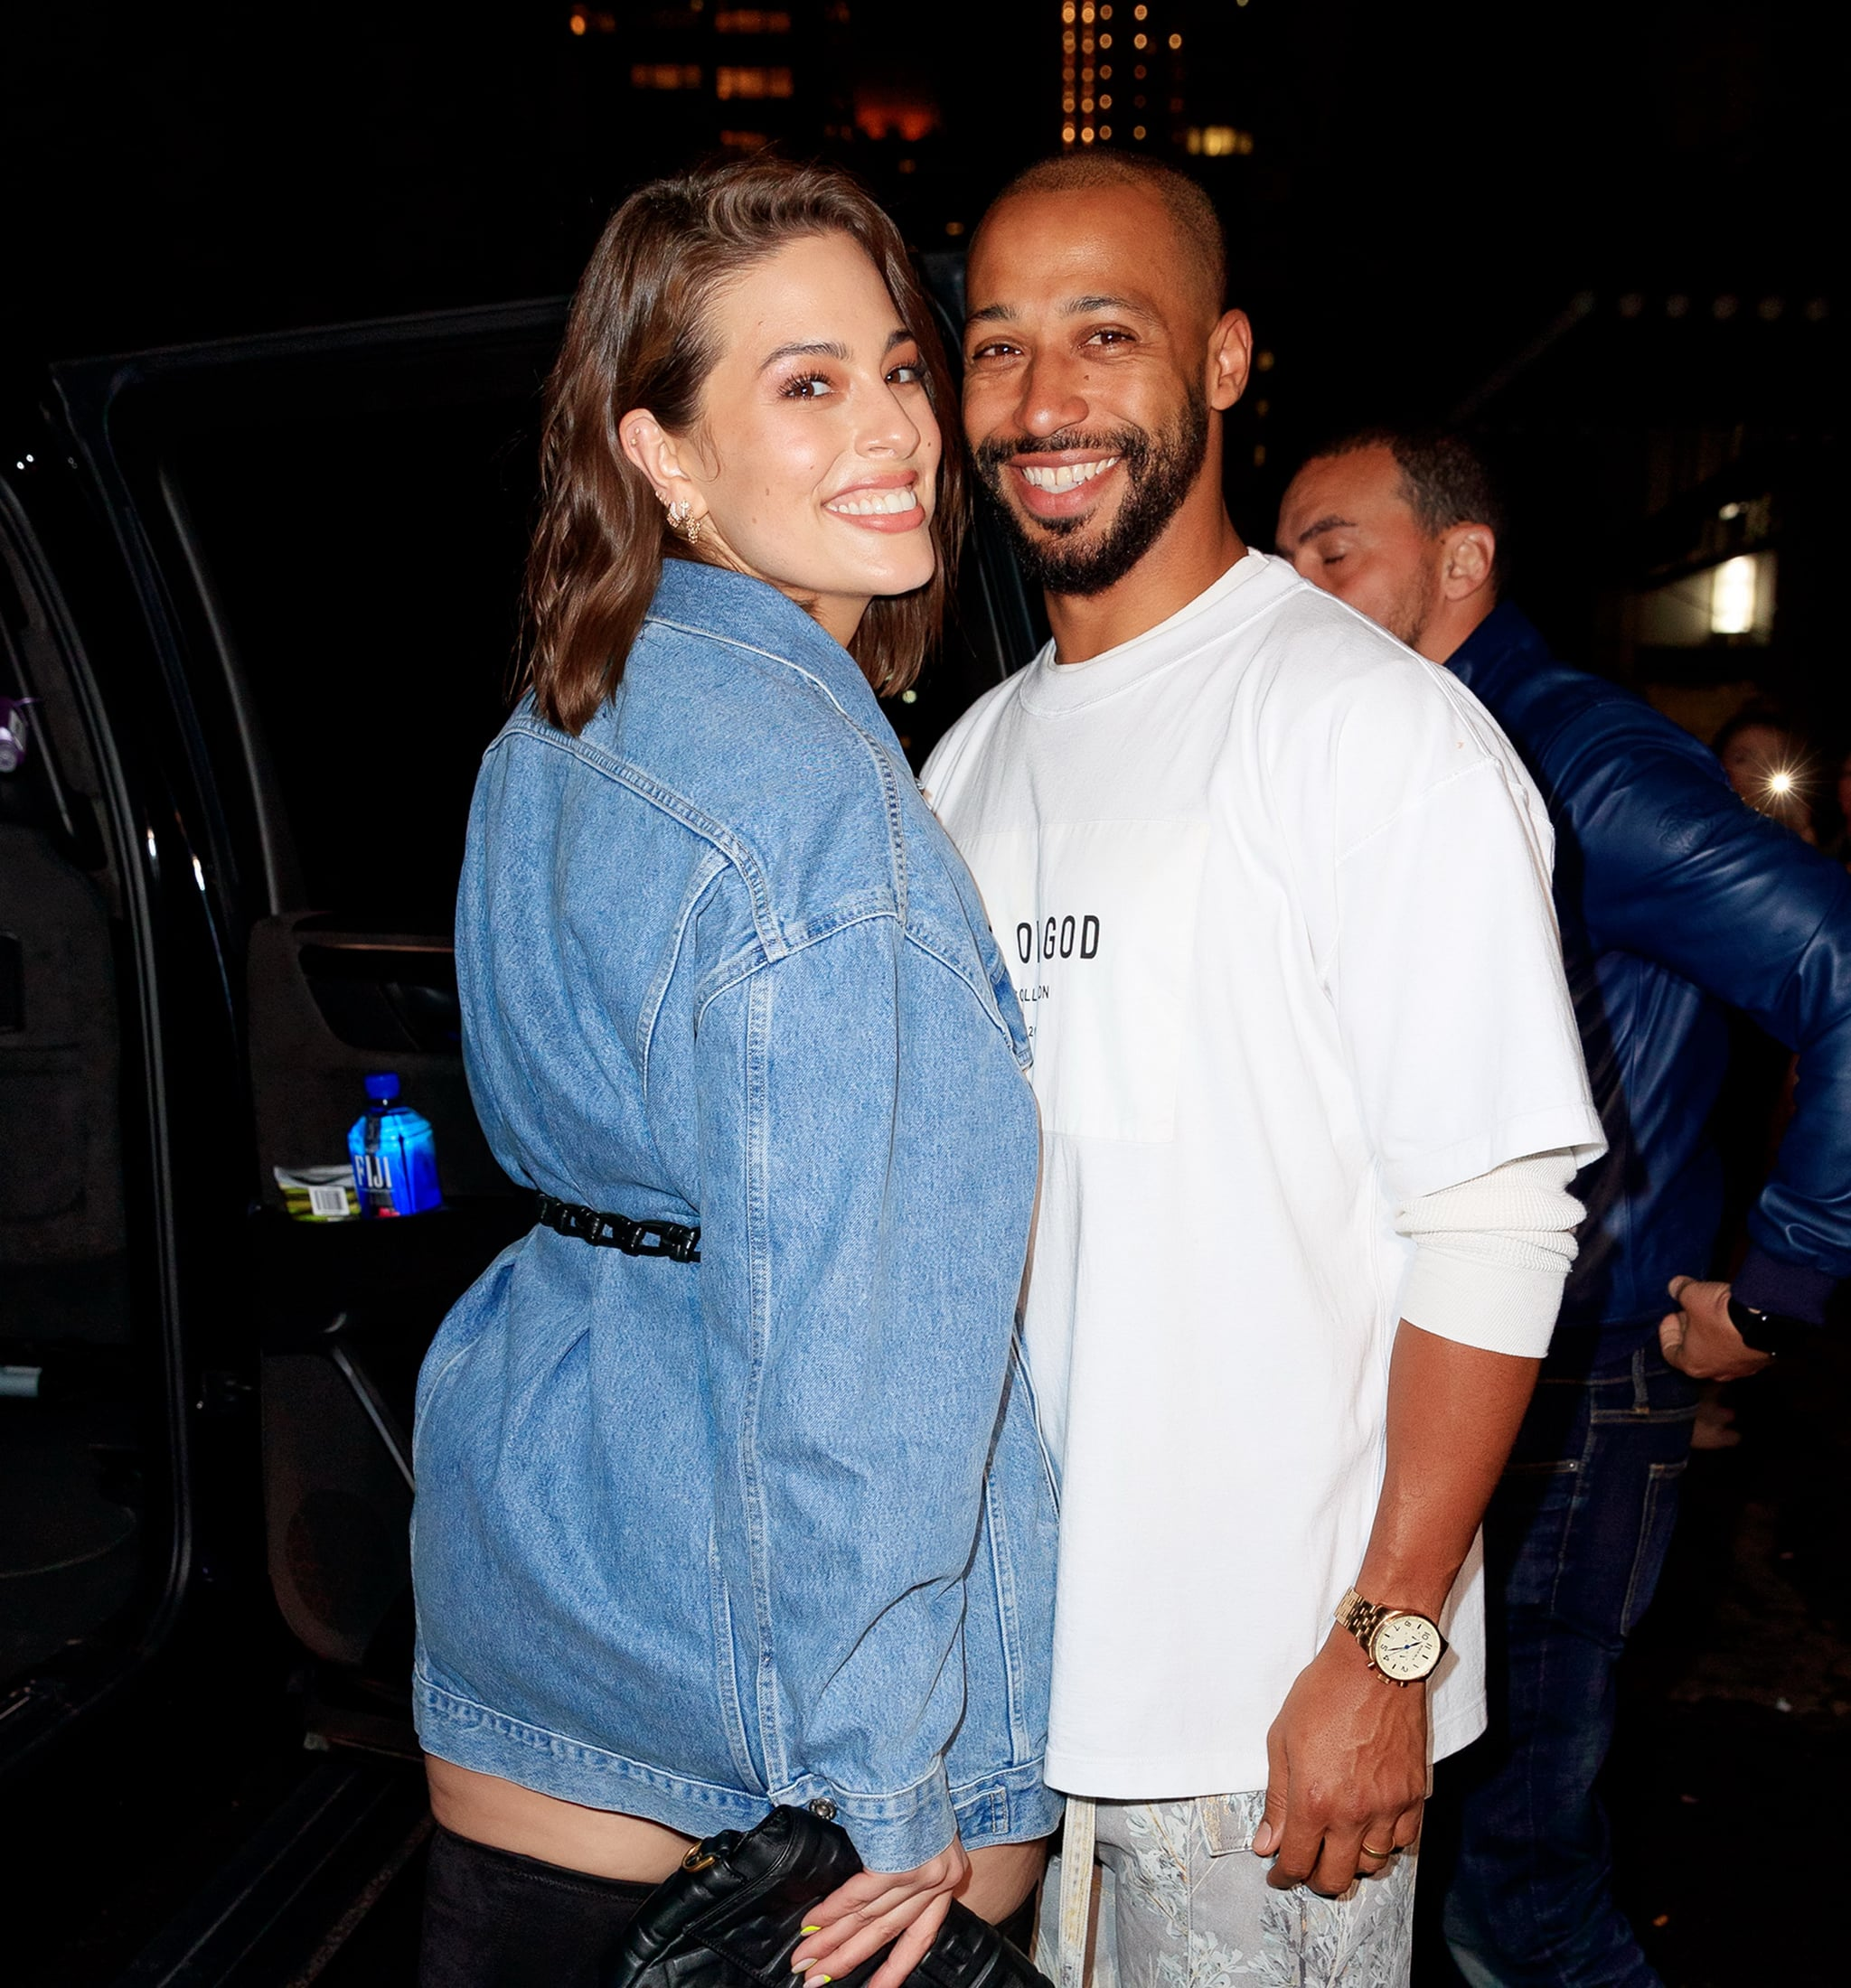 NEW YORK, NY - APRIL 22:  Ashley Graham and Justin Ervin arrive at Gigi Hadid's birthday party at Chalet on April 22, 2019 in New York City.  (Photo by Gotham/GC Images)